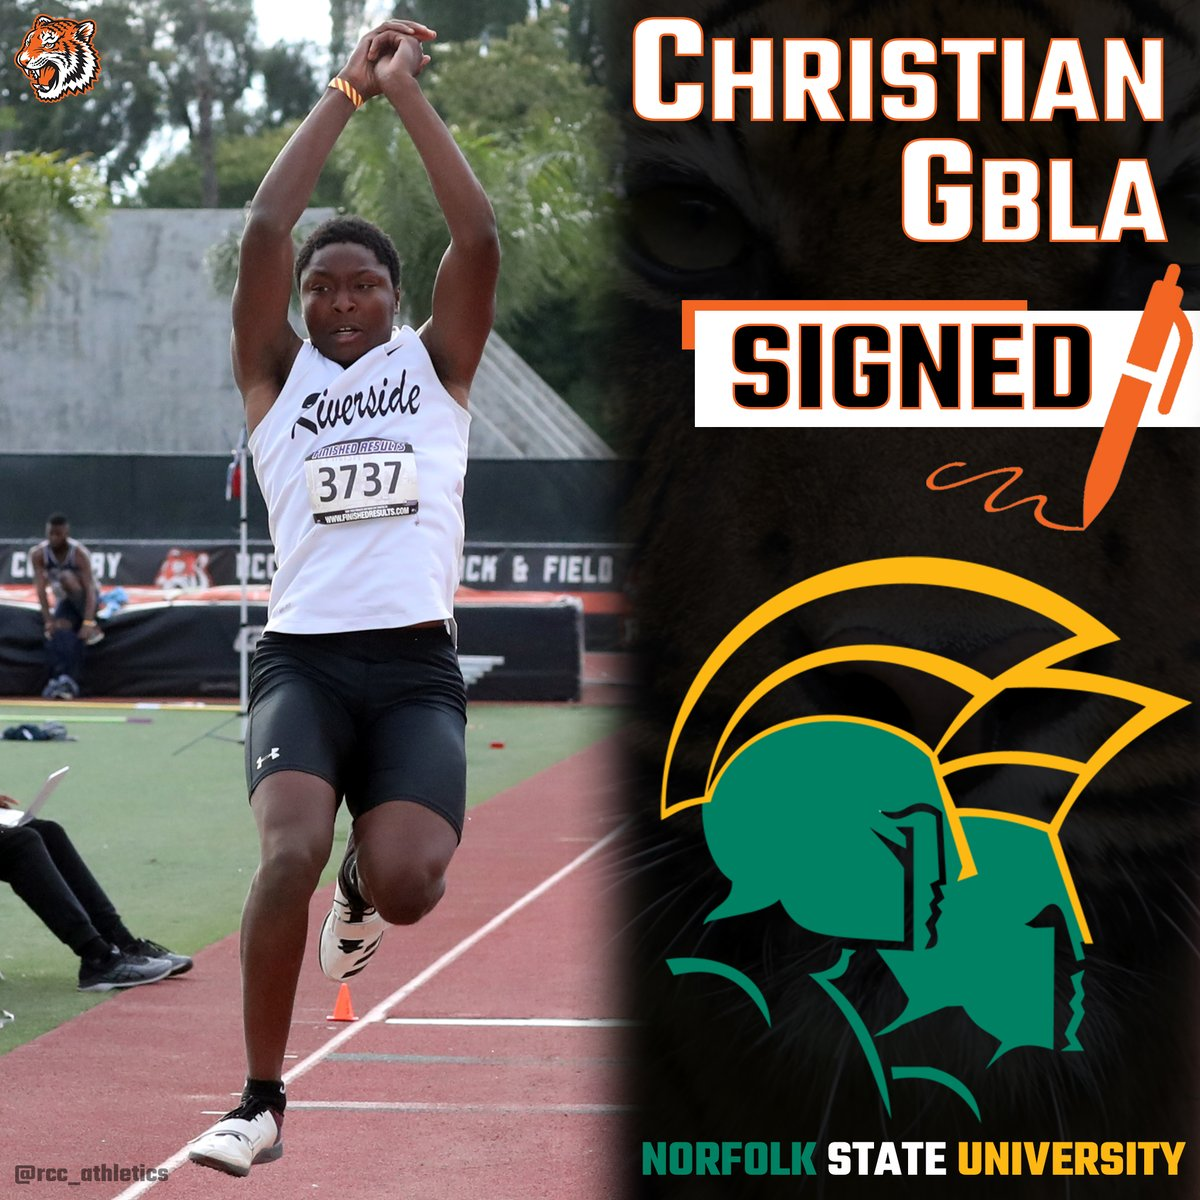 @rcctigermenstfxc: Christian Gbla leaps into a scholarship to attend Norfolk State University. #TheCommunitysCollege https://t.co/DbLE8W7xAT